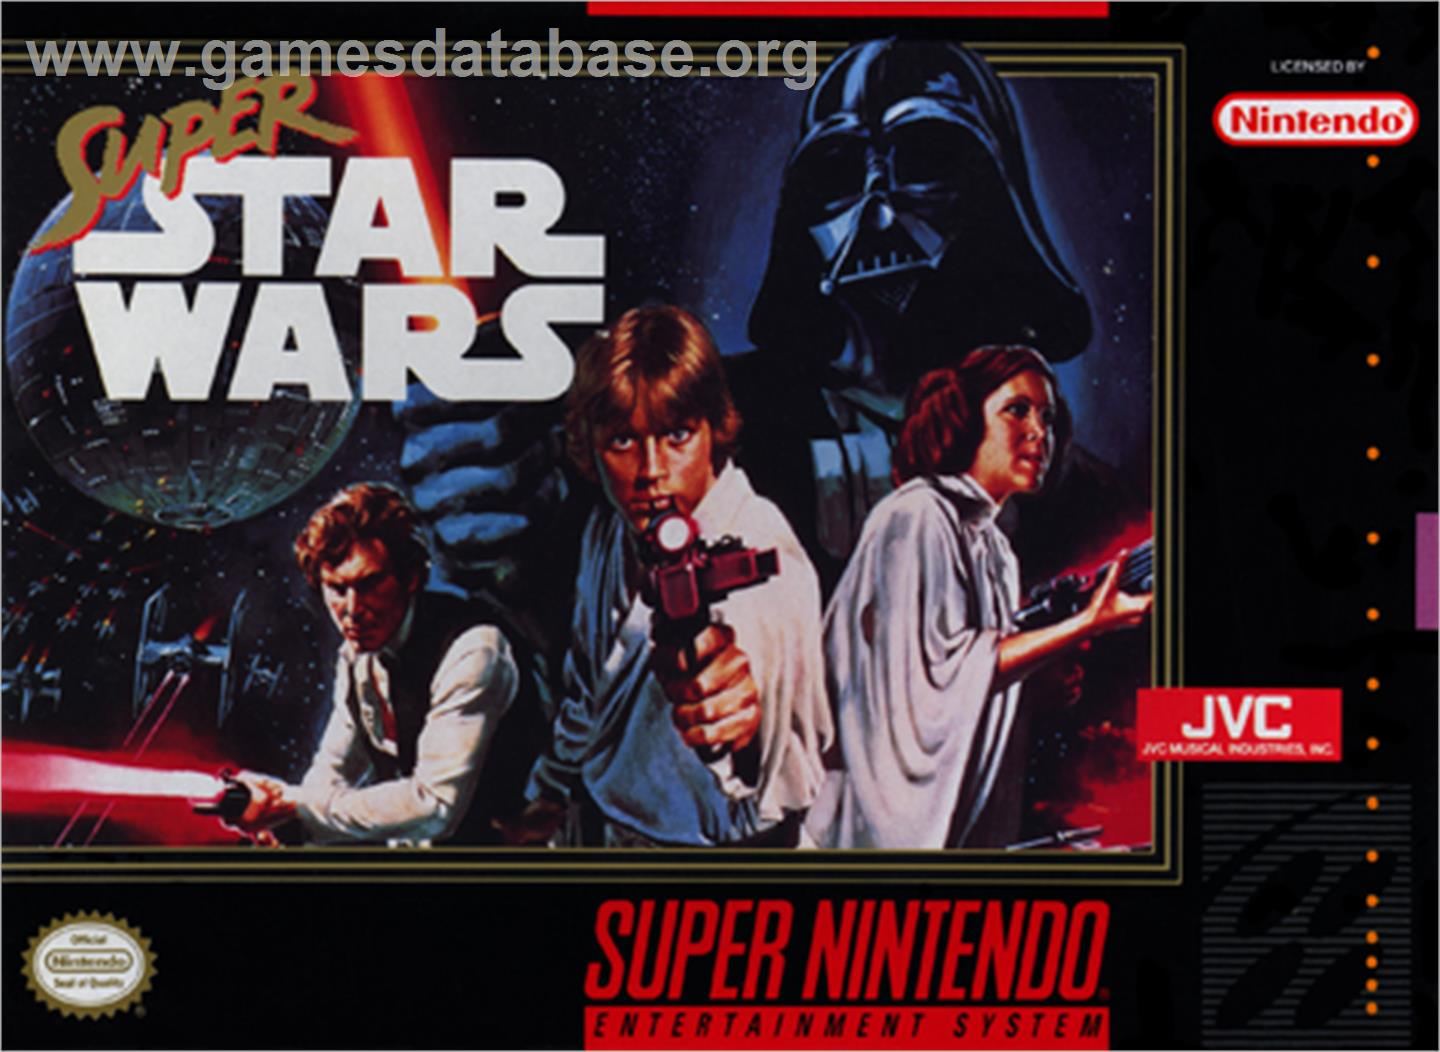 Super Star Wars - Nintendo SNES - Artwork - Box